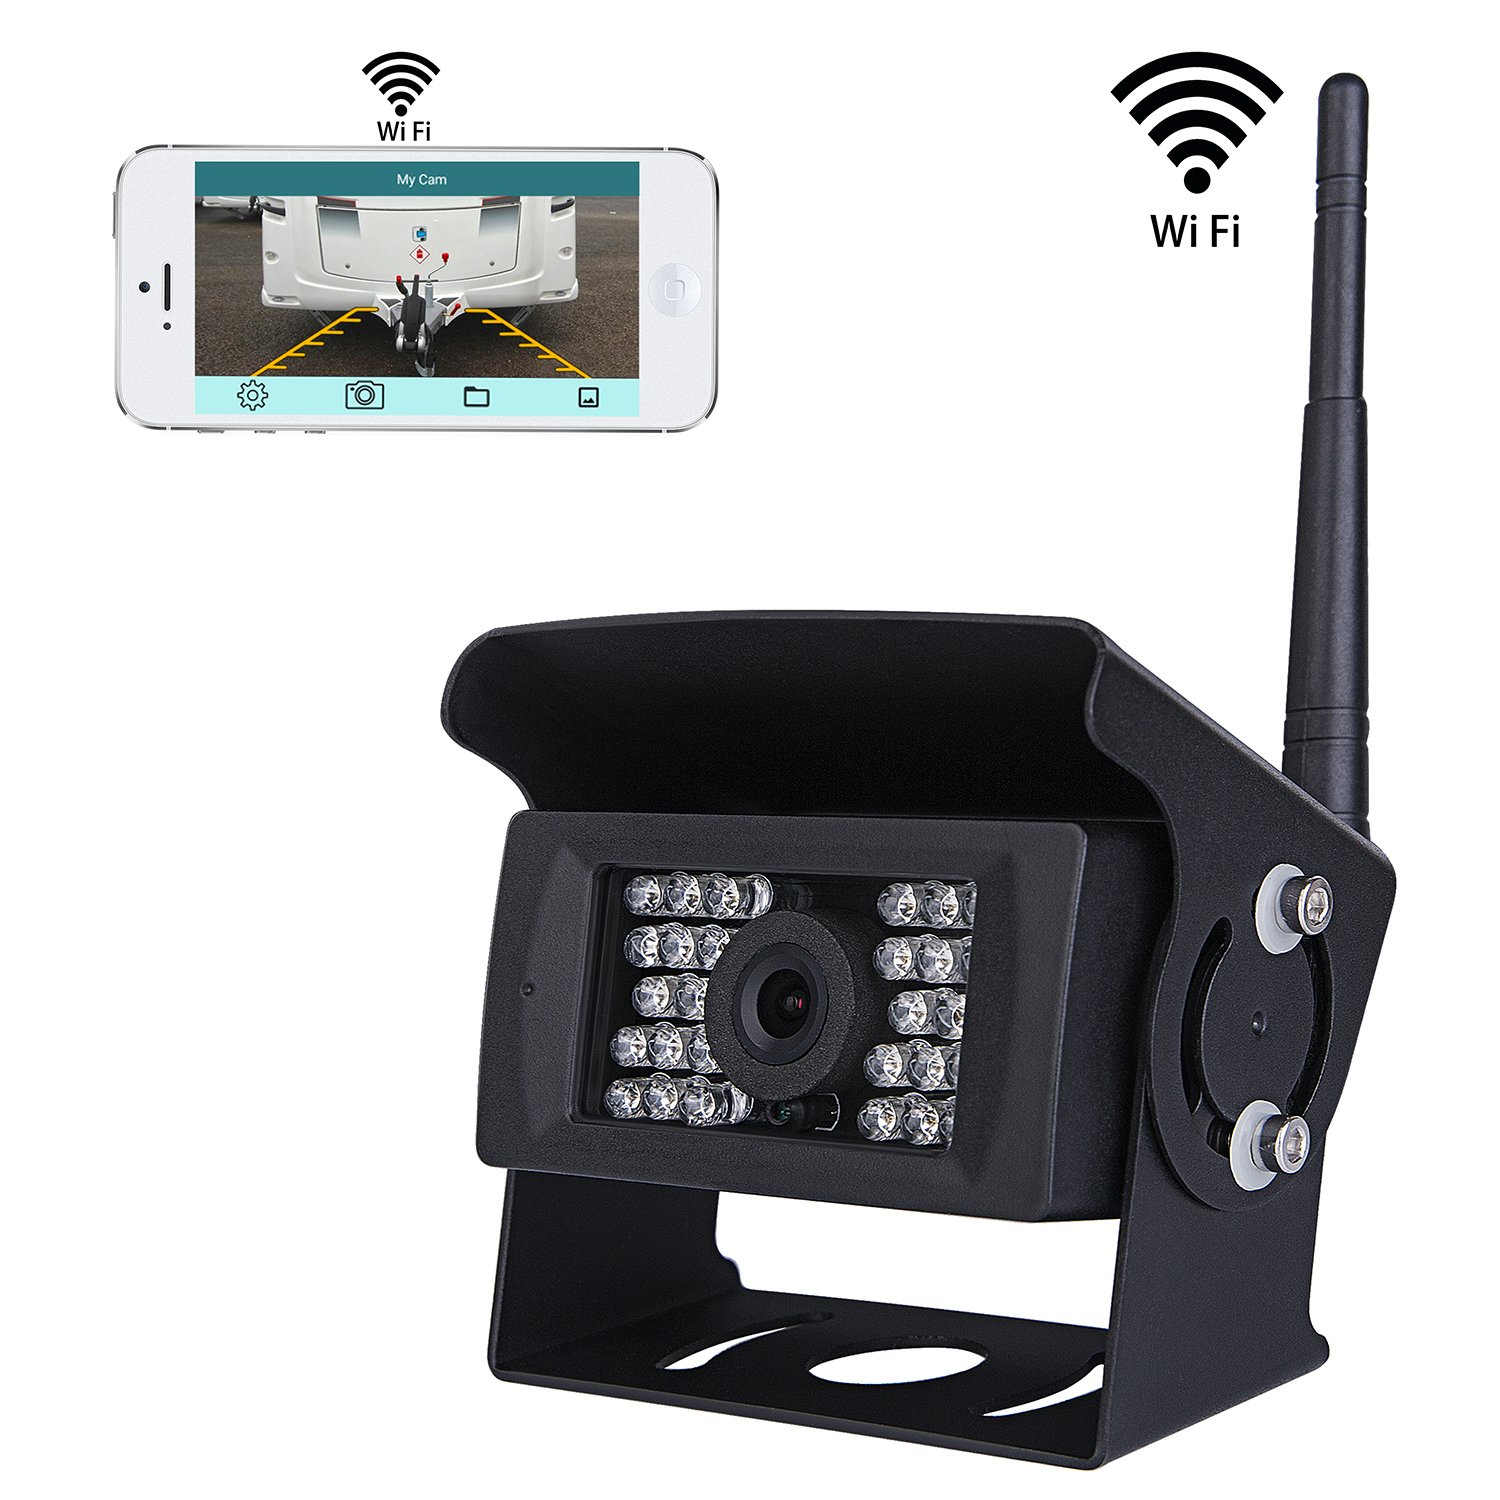 SVTCAM SV-928WF Wireless Backup Camera for Truck,RV,Camper,Trailer. WiFi Backup Camera Work with iphone , ipad or Andriod Devices